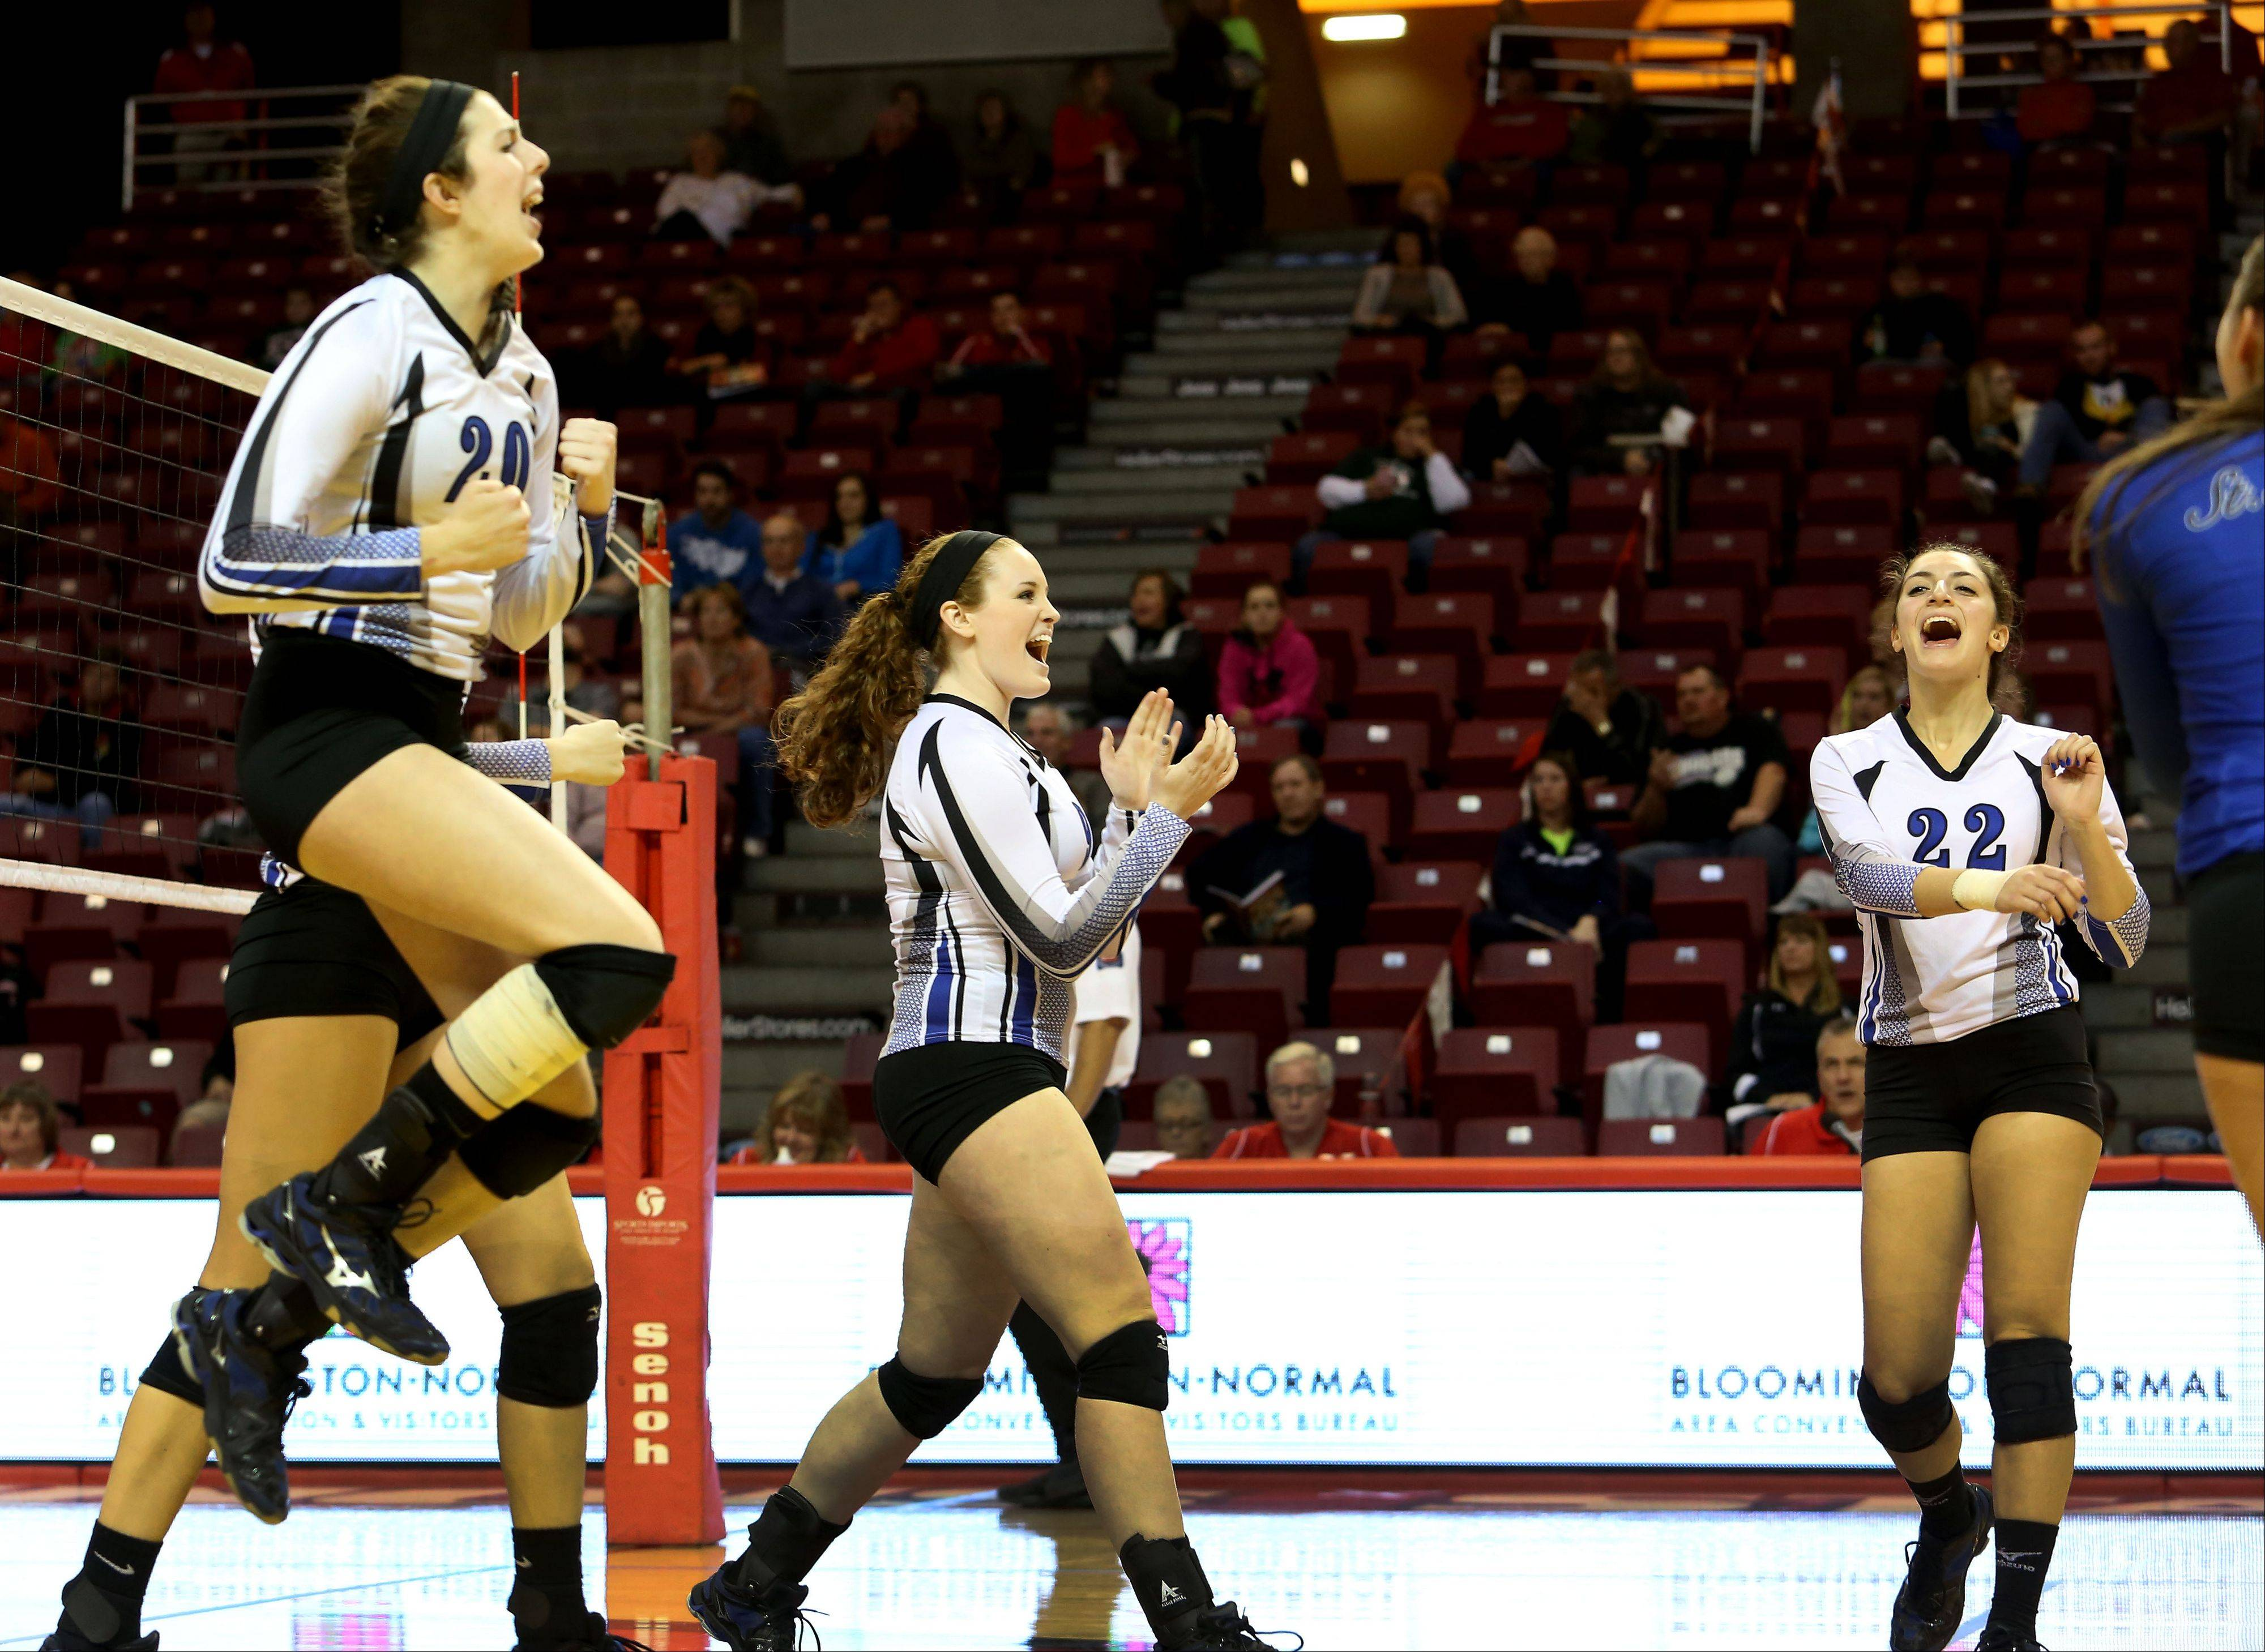 St. Francis players react to a point.